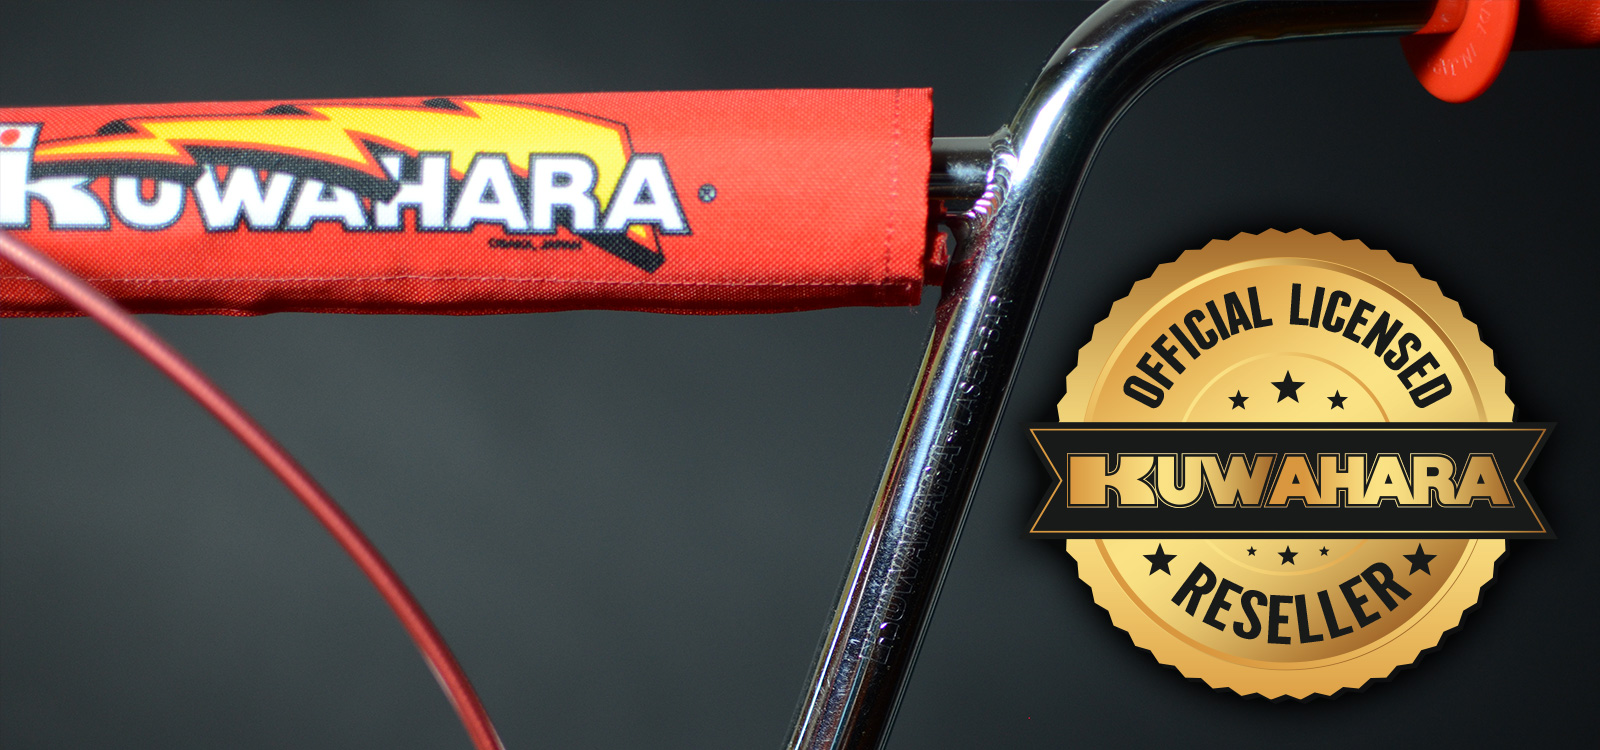 It's Official!  We're an Authorized Worldwide Reseller Of Kuwahara Decals!